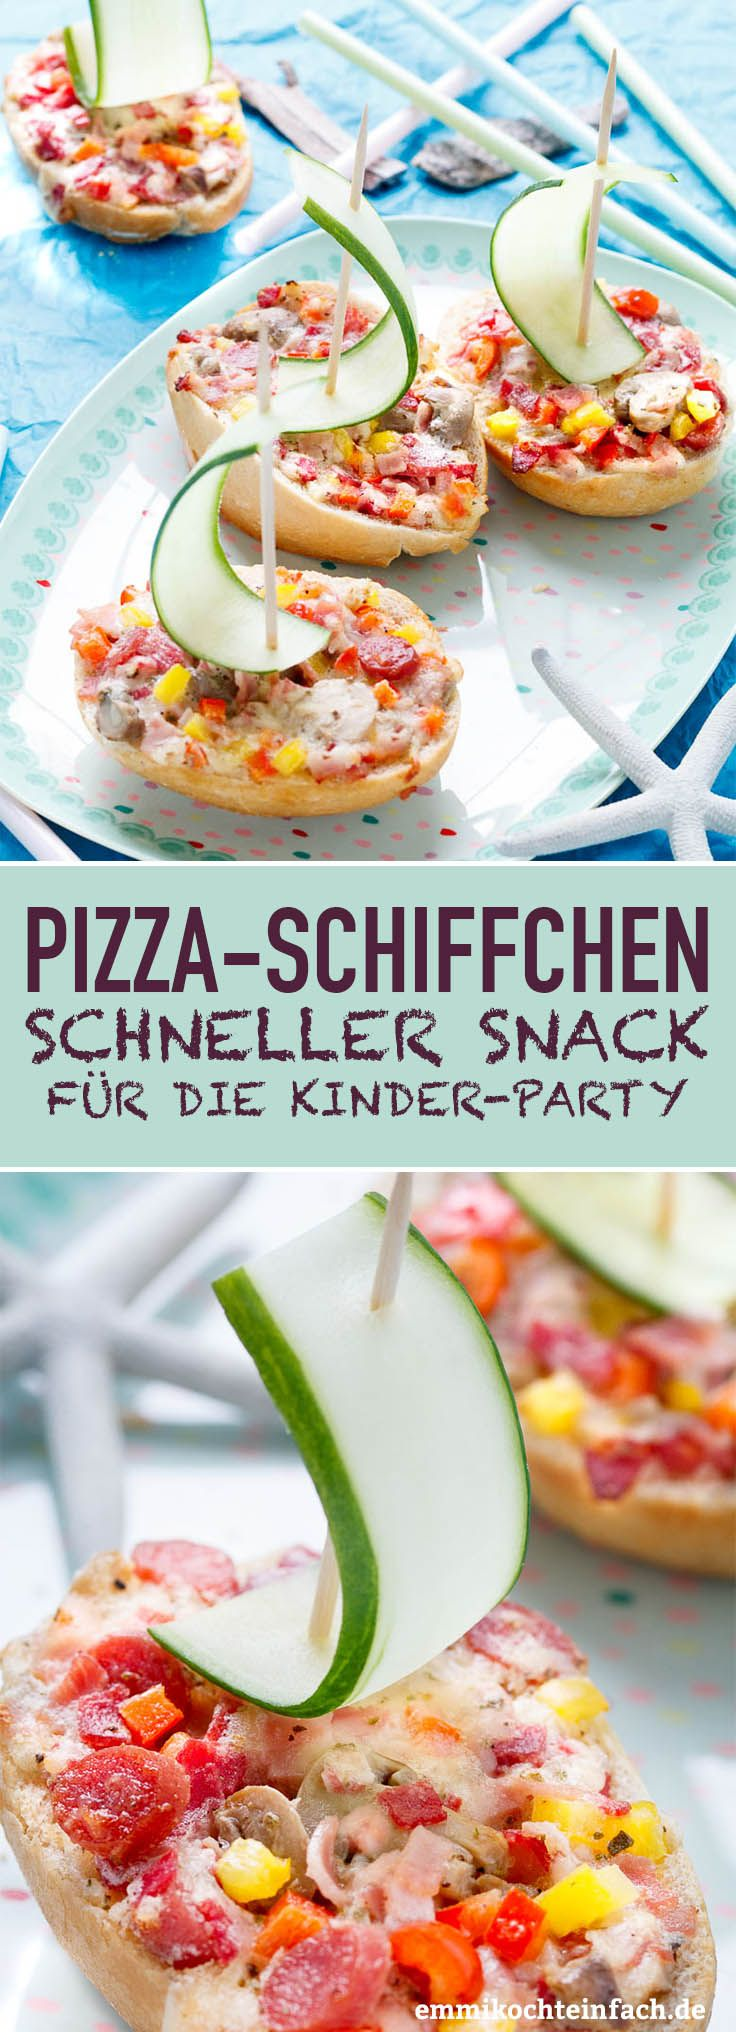 pizza schiffchen der schnelle snack f r die kinder party rezept kindergeburtstag jonathan. Black Bedroom Furniture Sets. Home Design Ideas